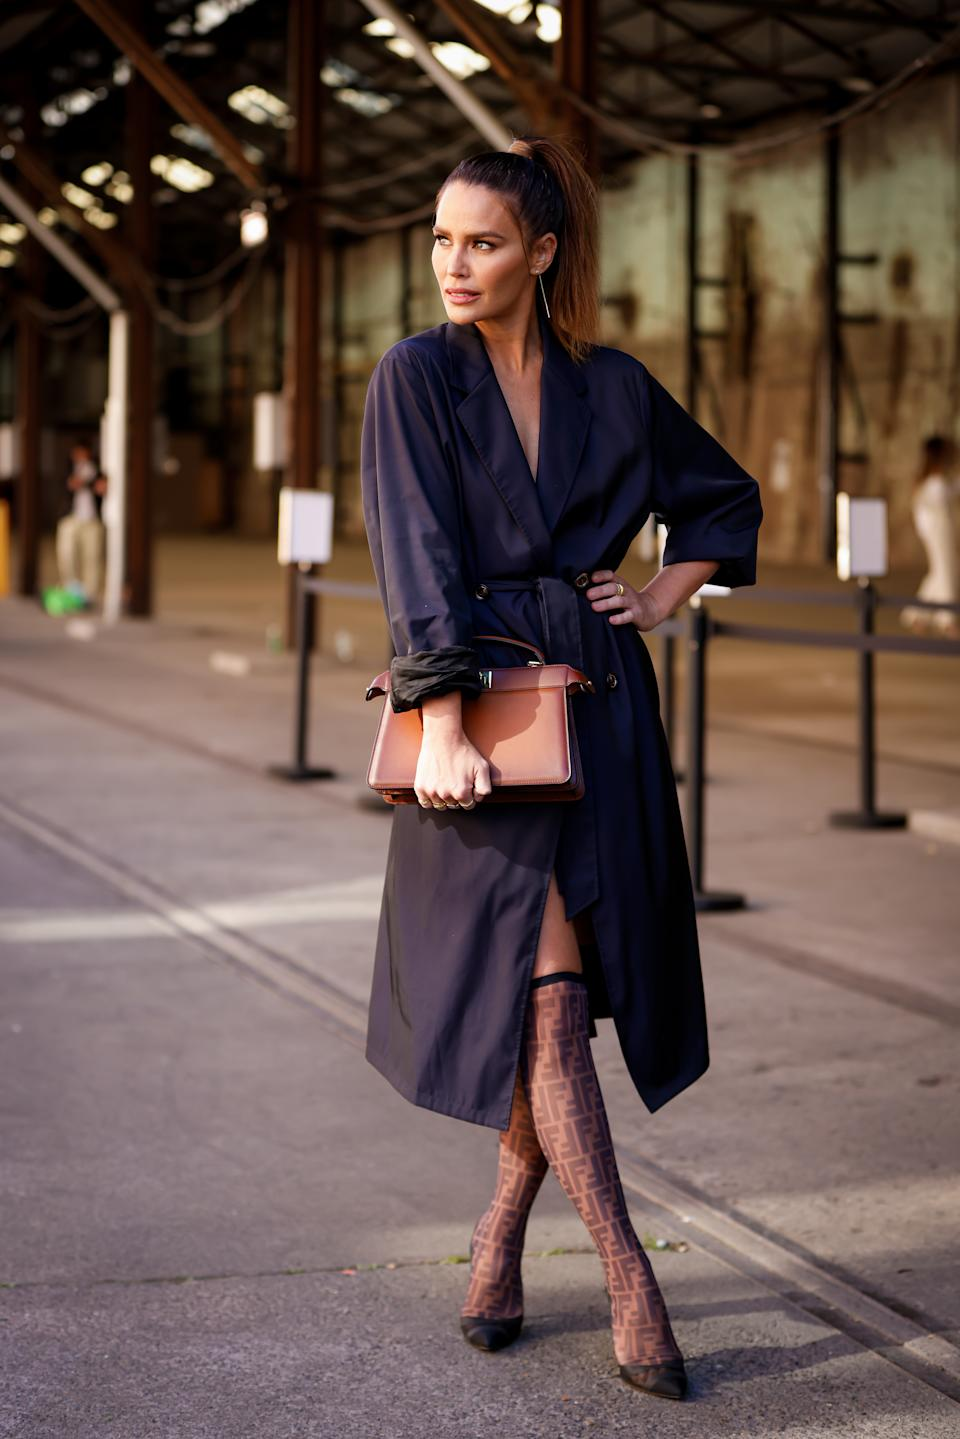 Jodi Gordon wearing Bally trench, Fendi bag, shoes and monogrammed stockings at Afterpay Australian Fashion Week 2021 on May 31, 2021 in Sydney, Australia